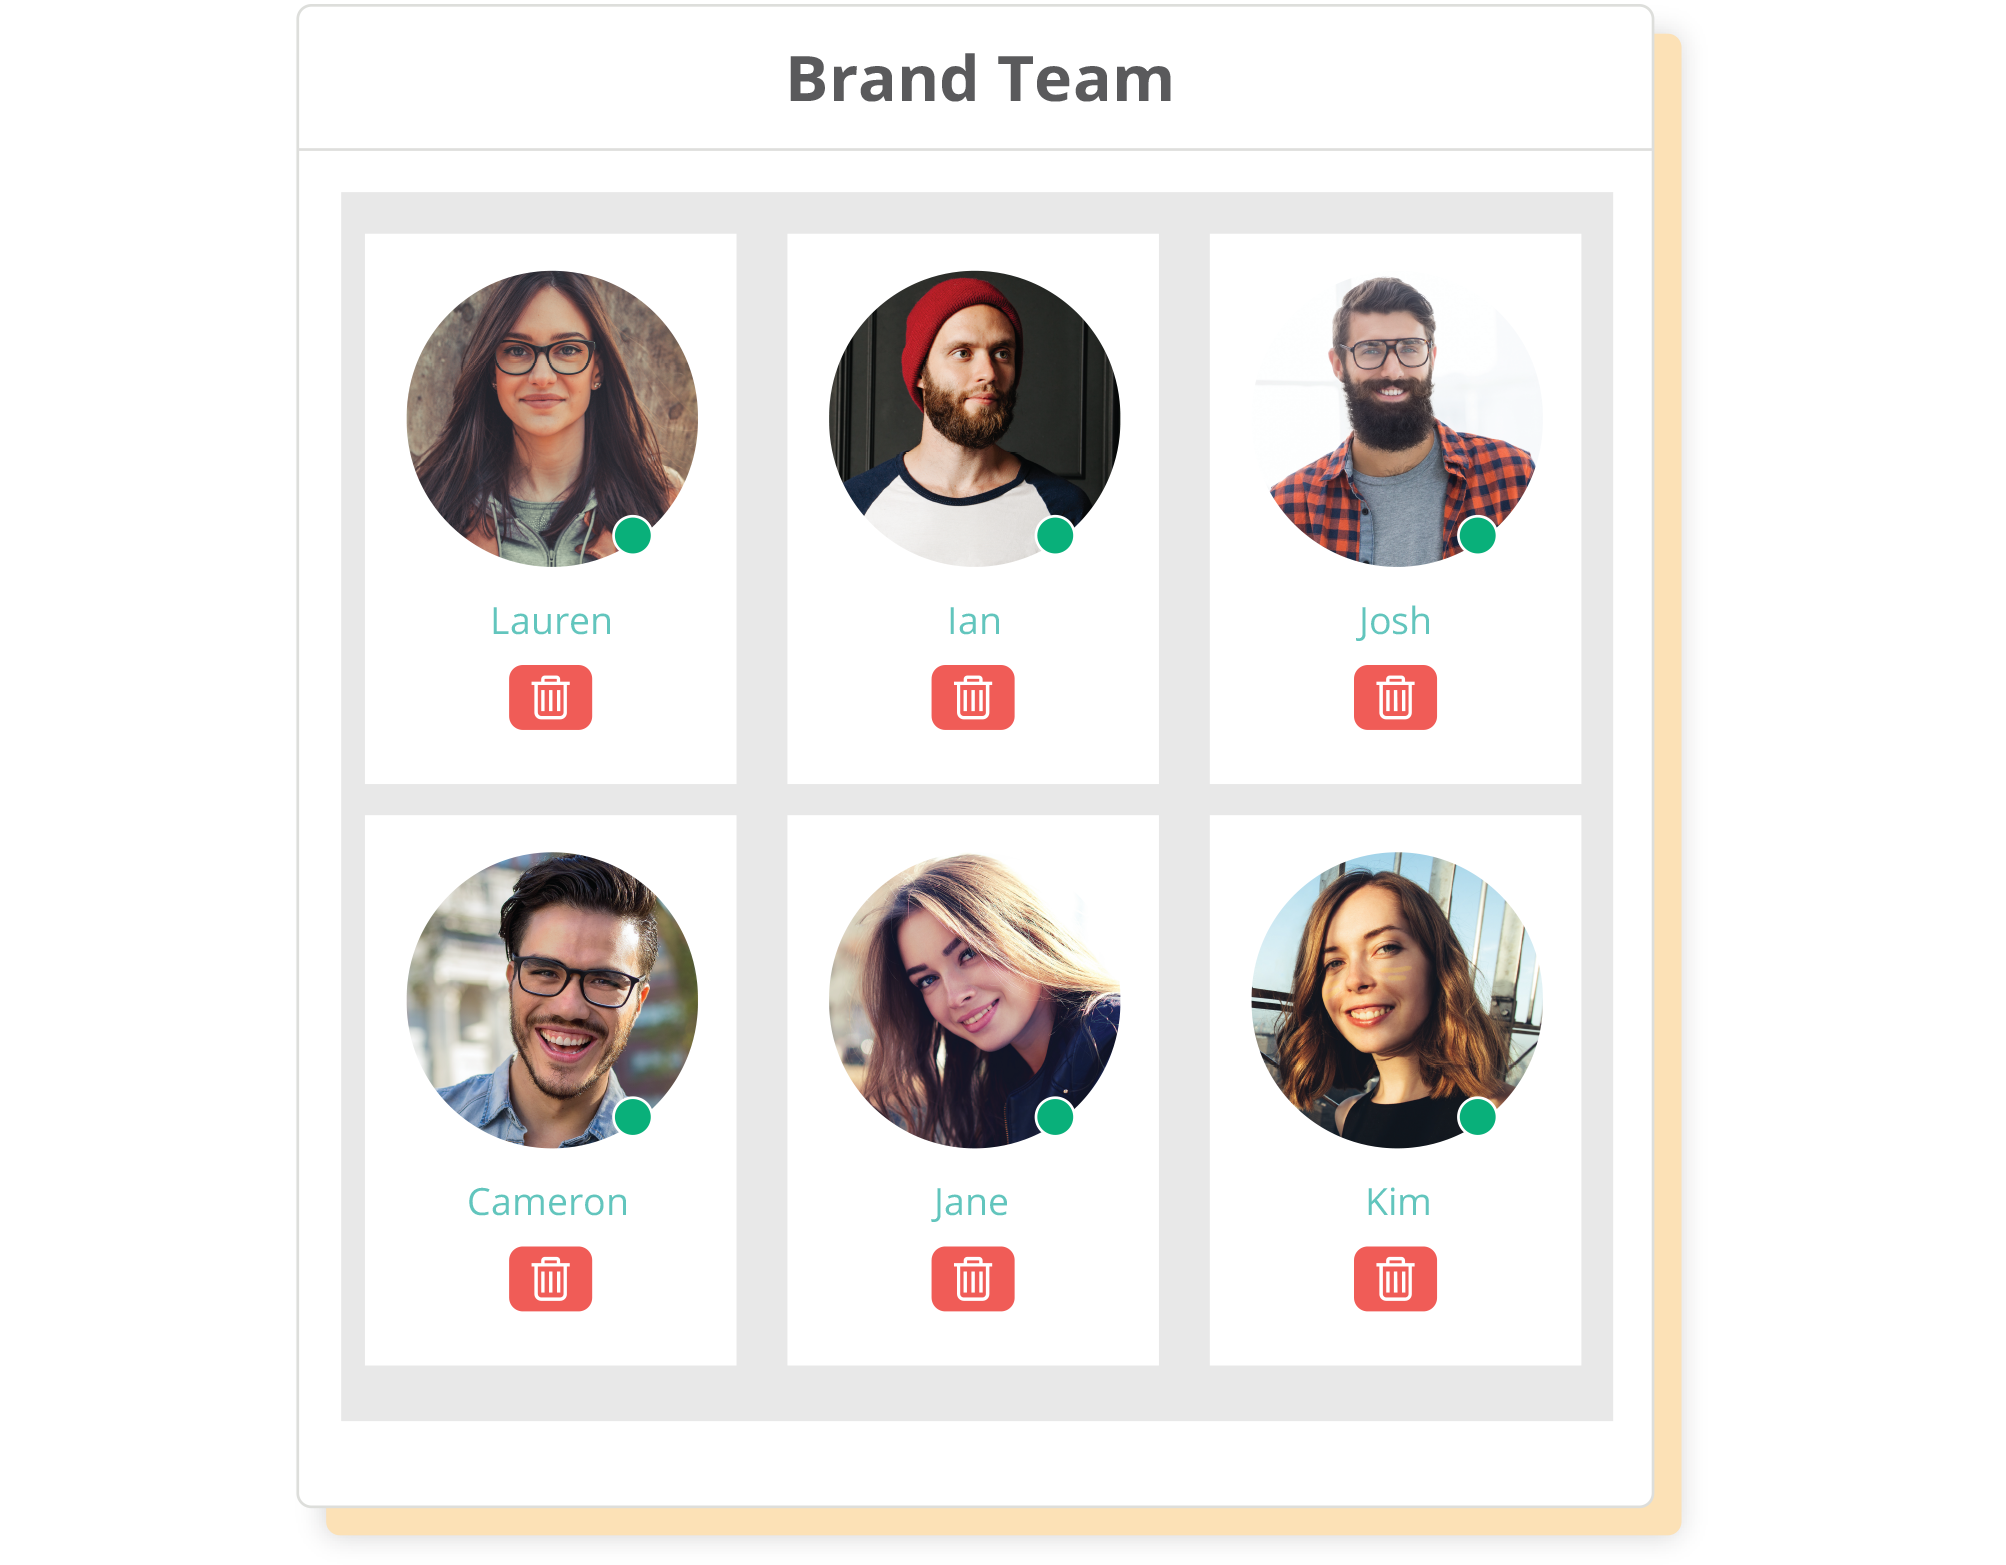 Easily manage all your teams and projects